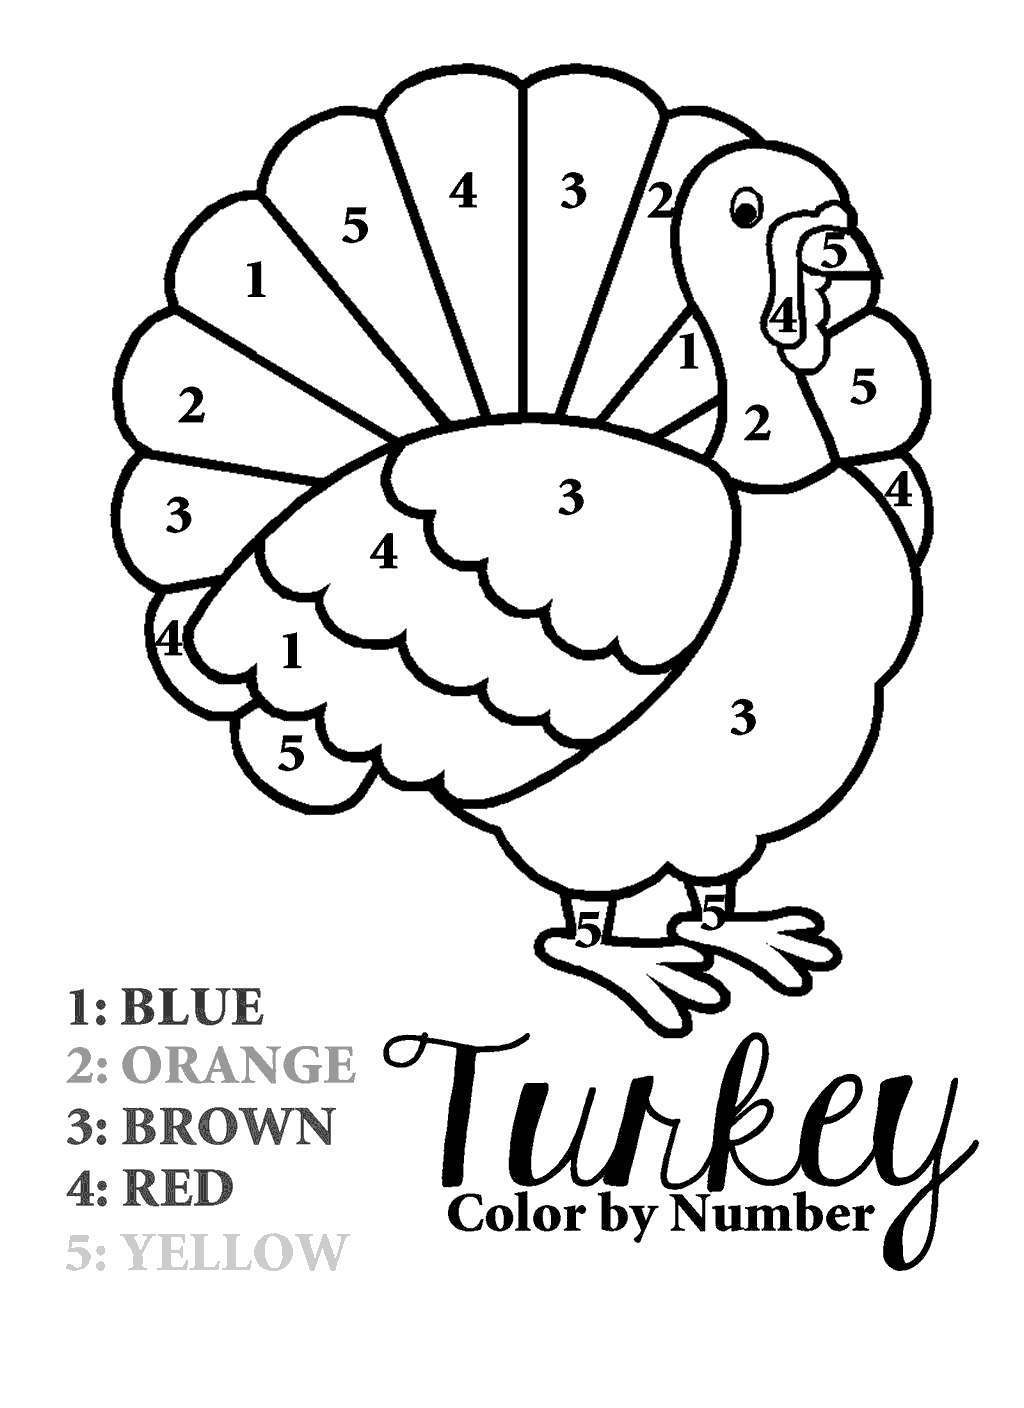 Free Free Turkey Coloring Sheets Color by Number printable